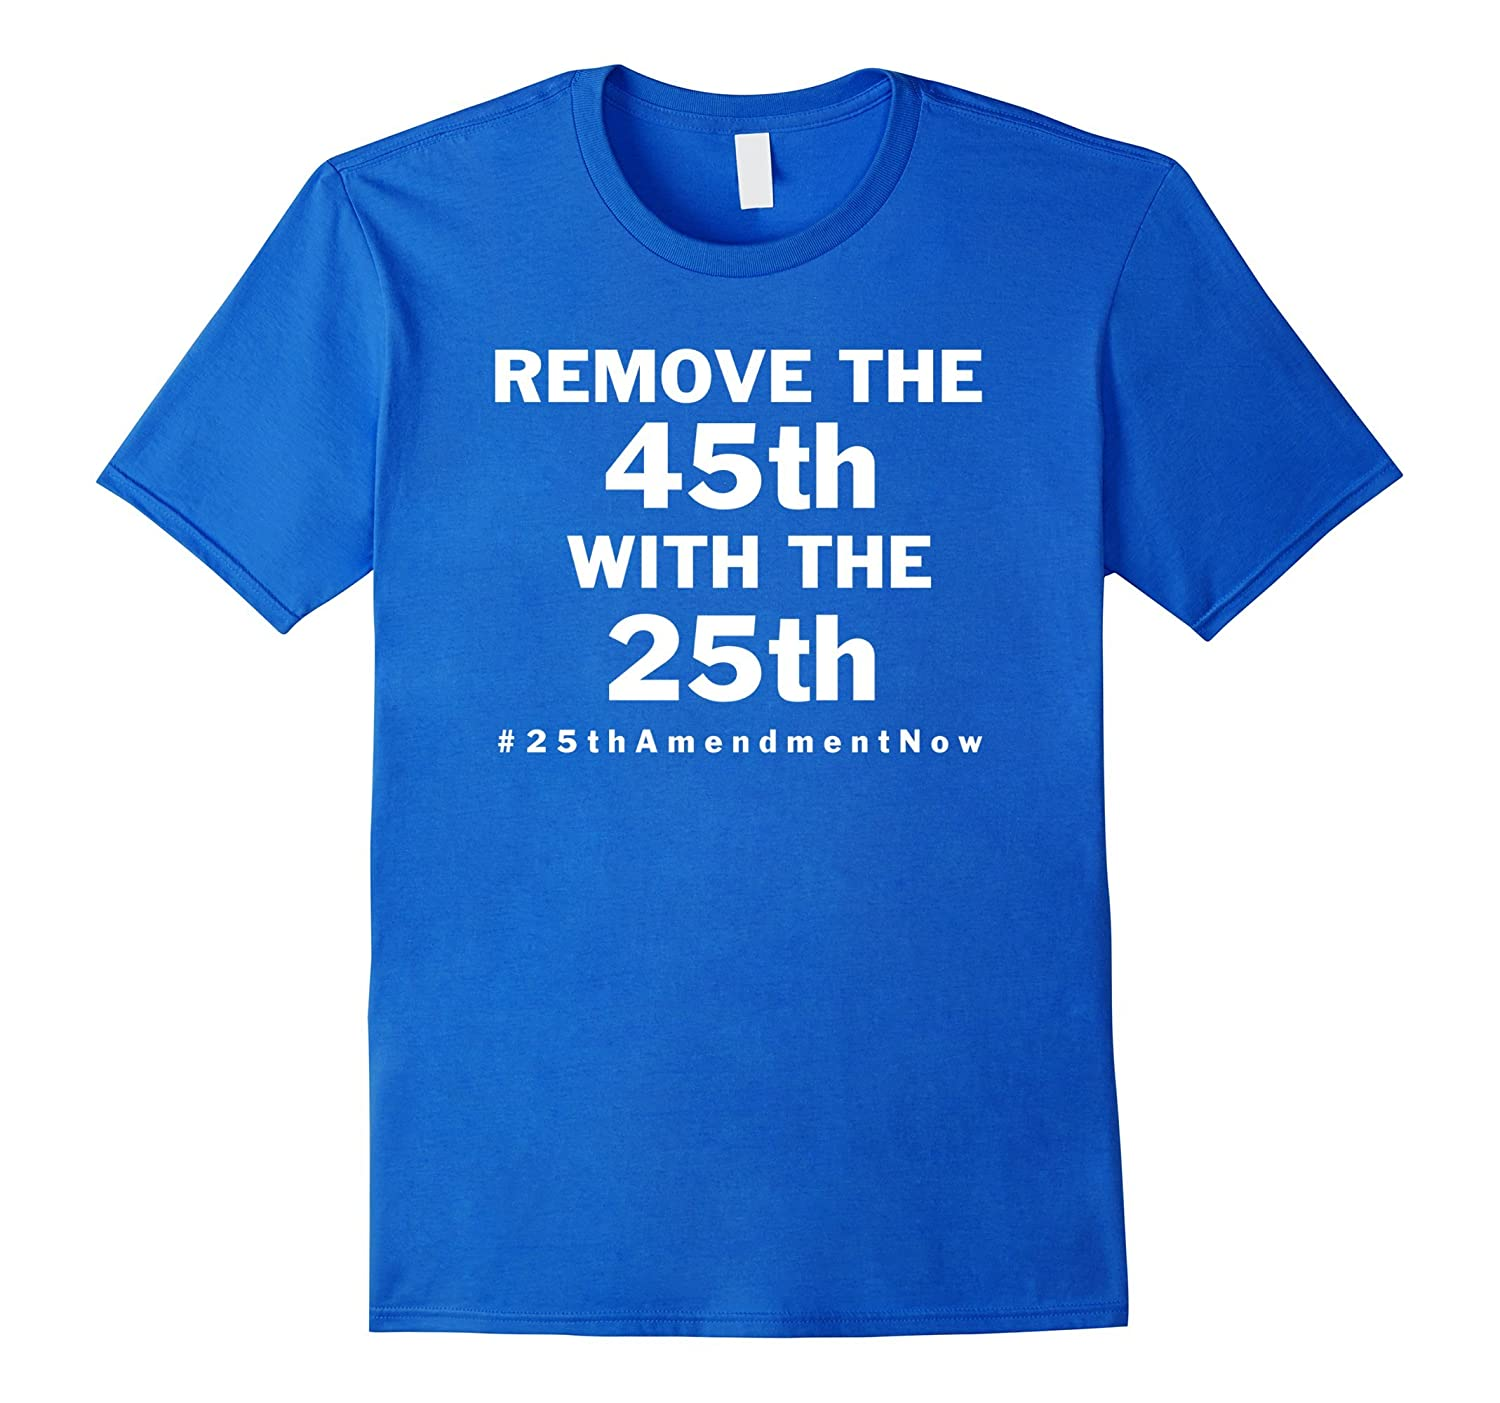 25th Amendment Now Shirt- Remove the 45th with the 25th Tee-PL